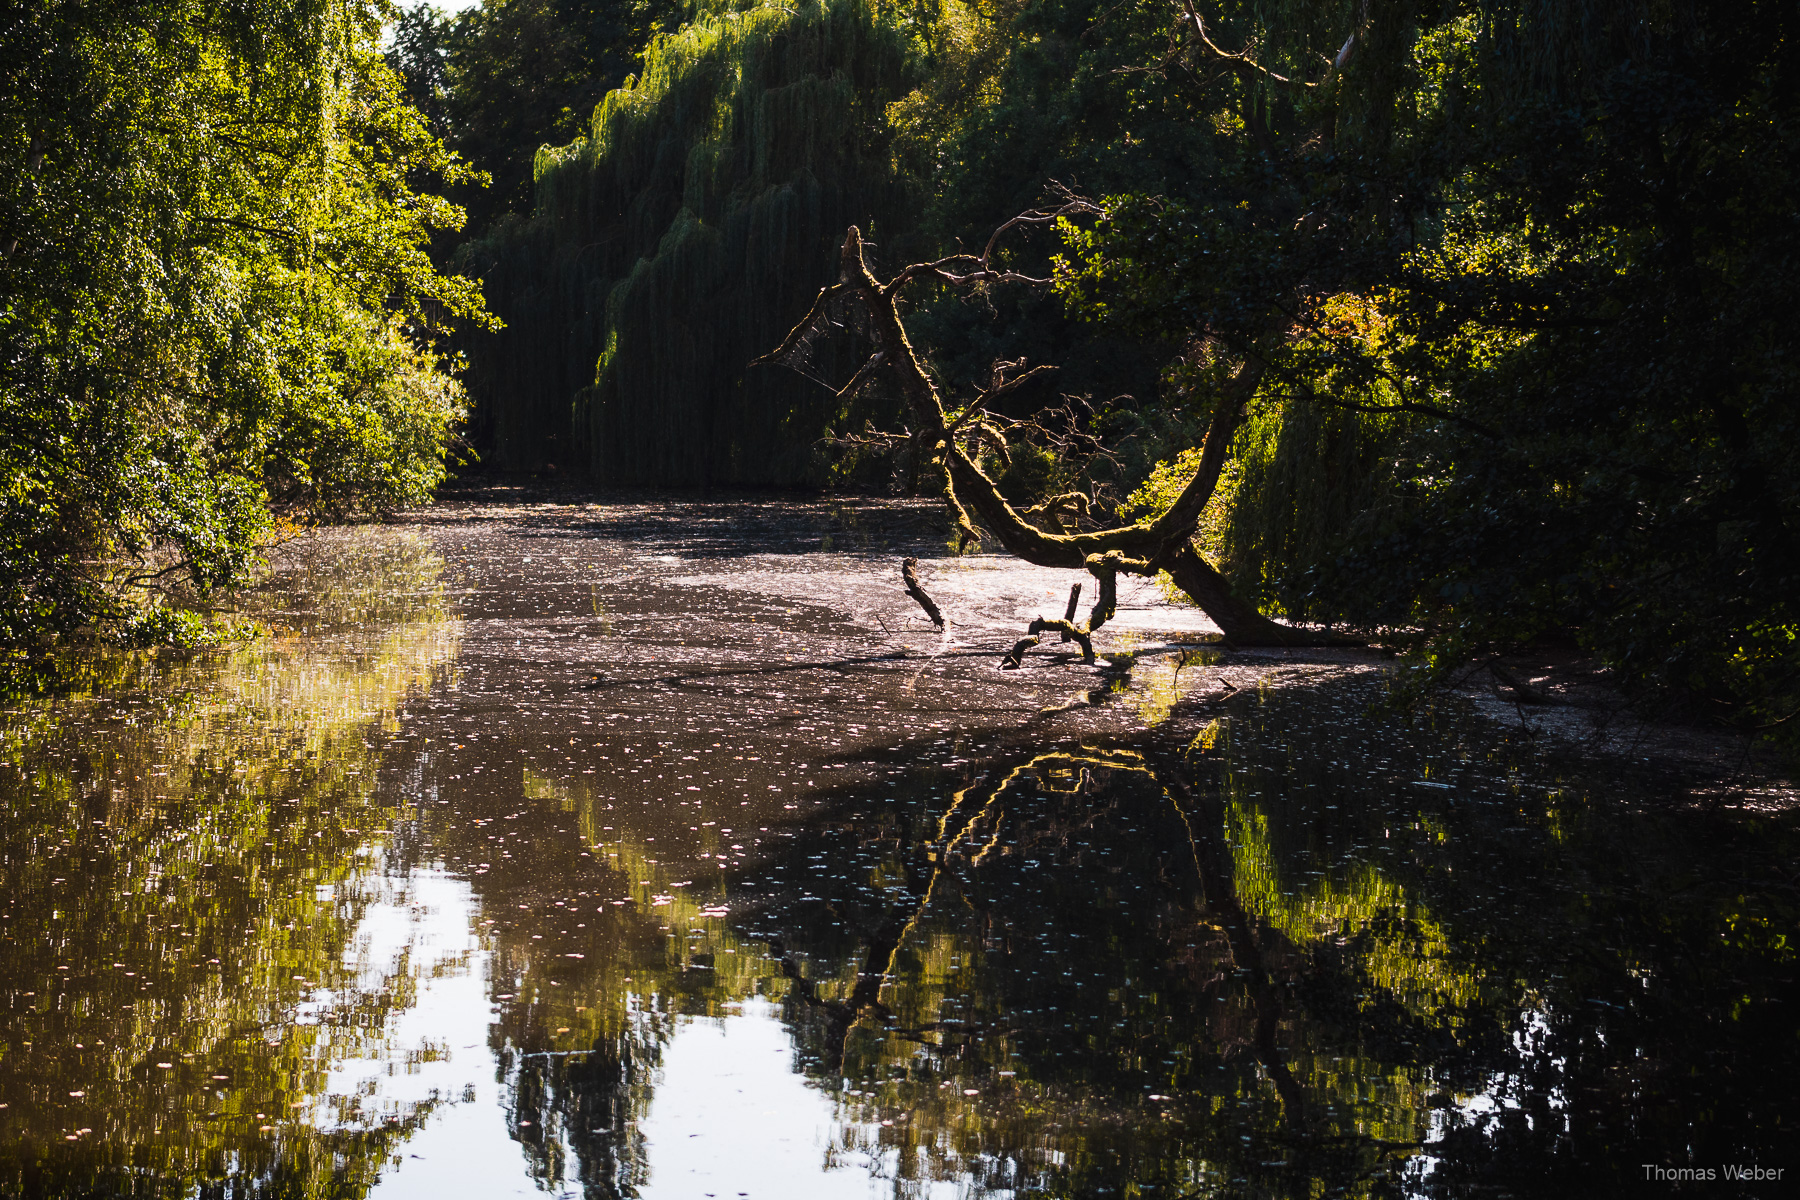 Natur an der Hunte in Oldenburg, Fotograf Thomas Weber